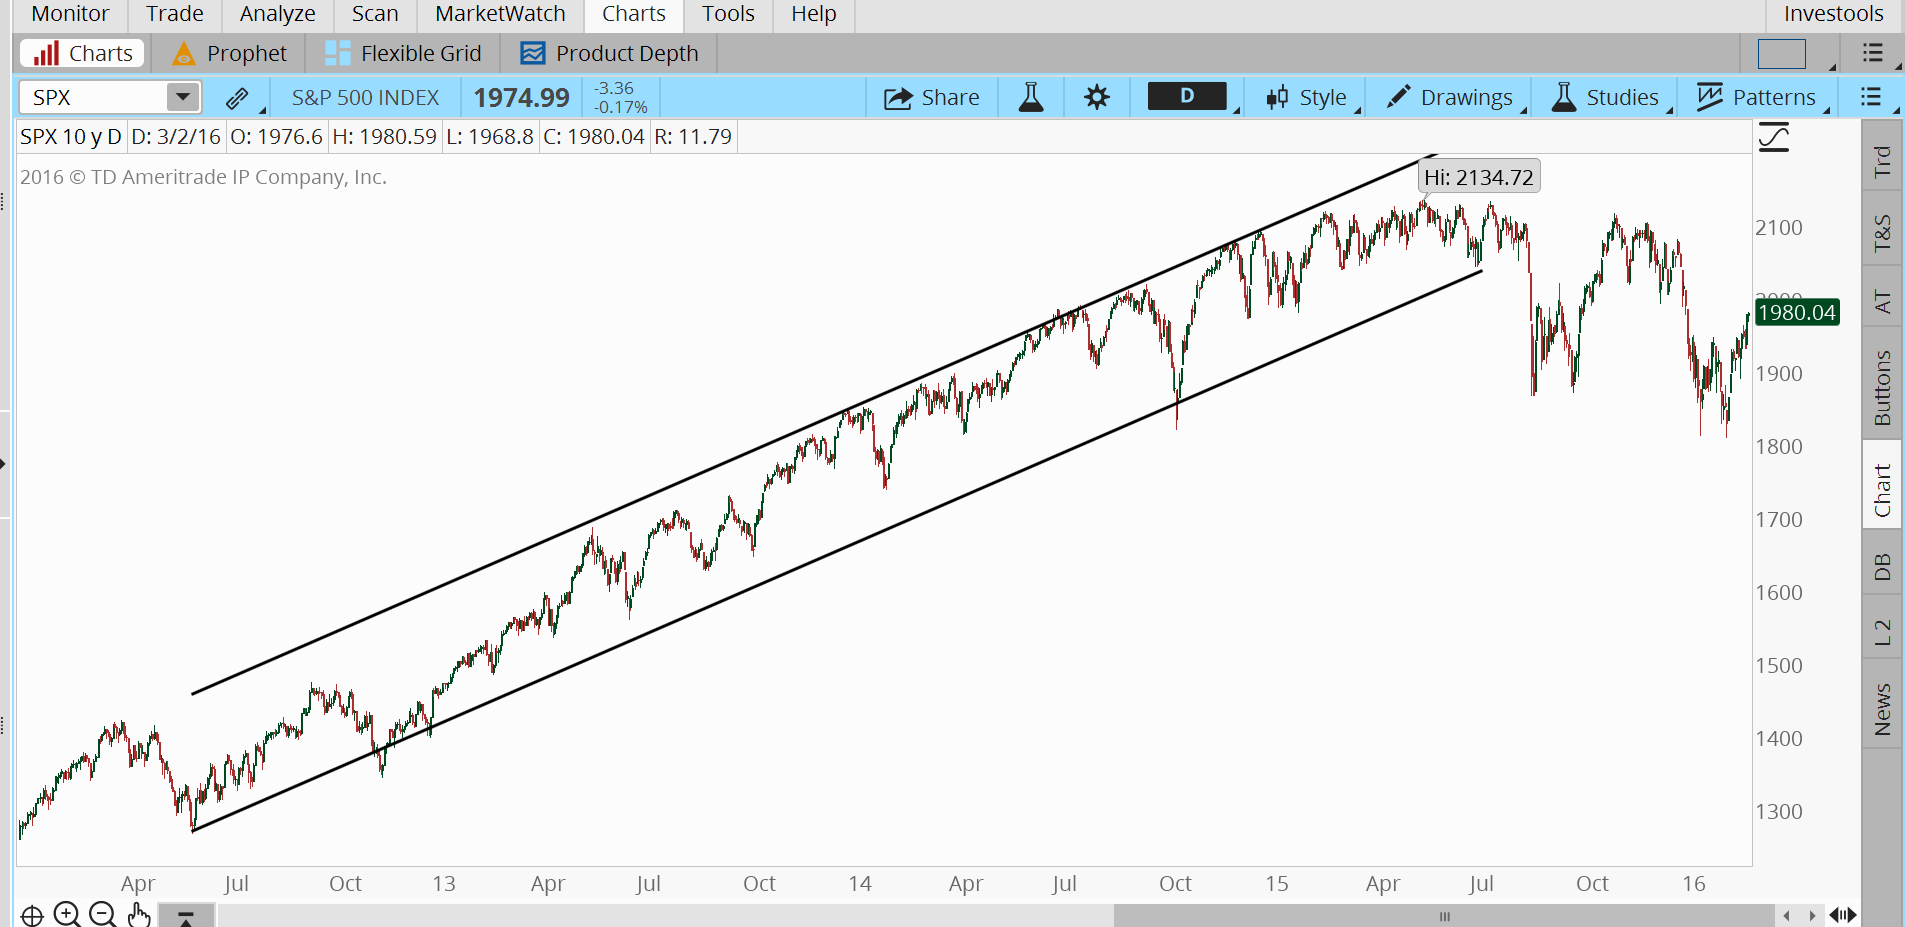 Break in the long-term SPX trend